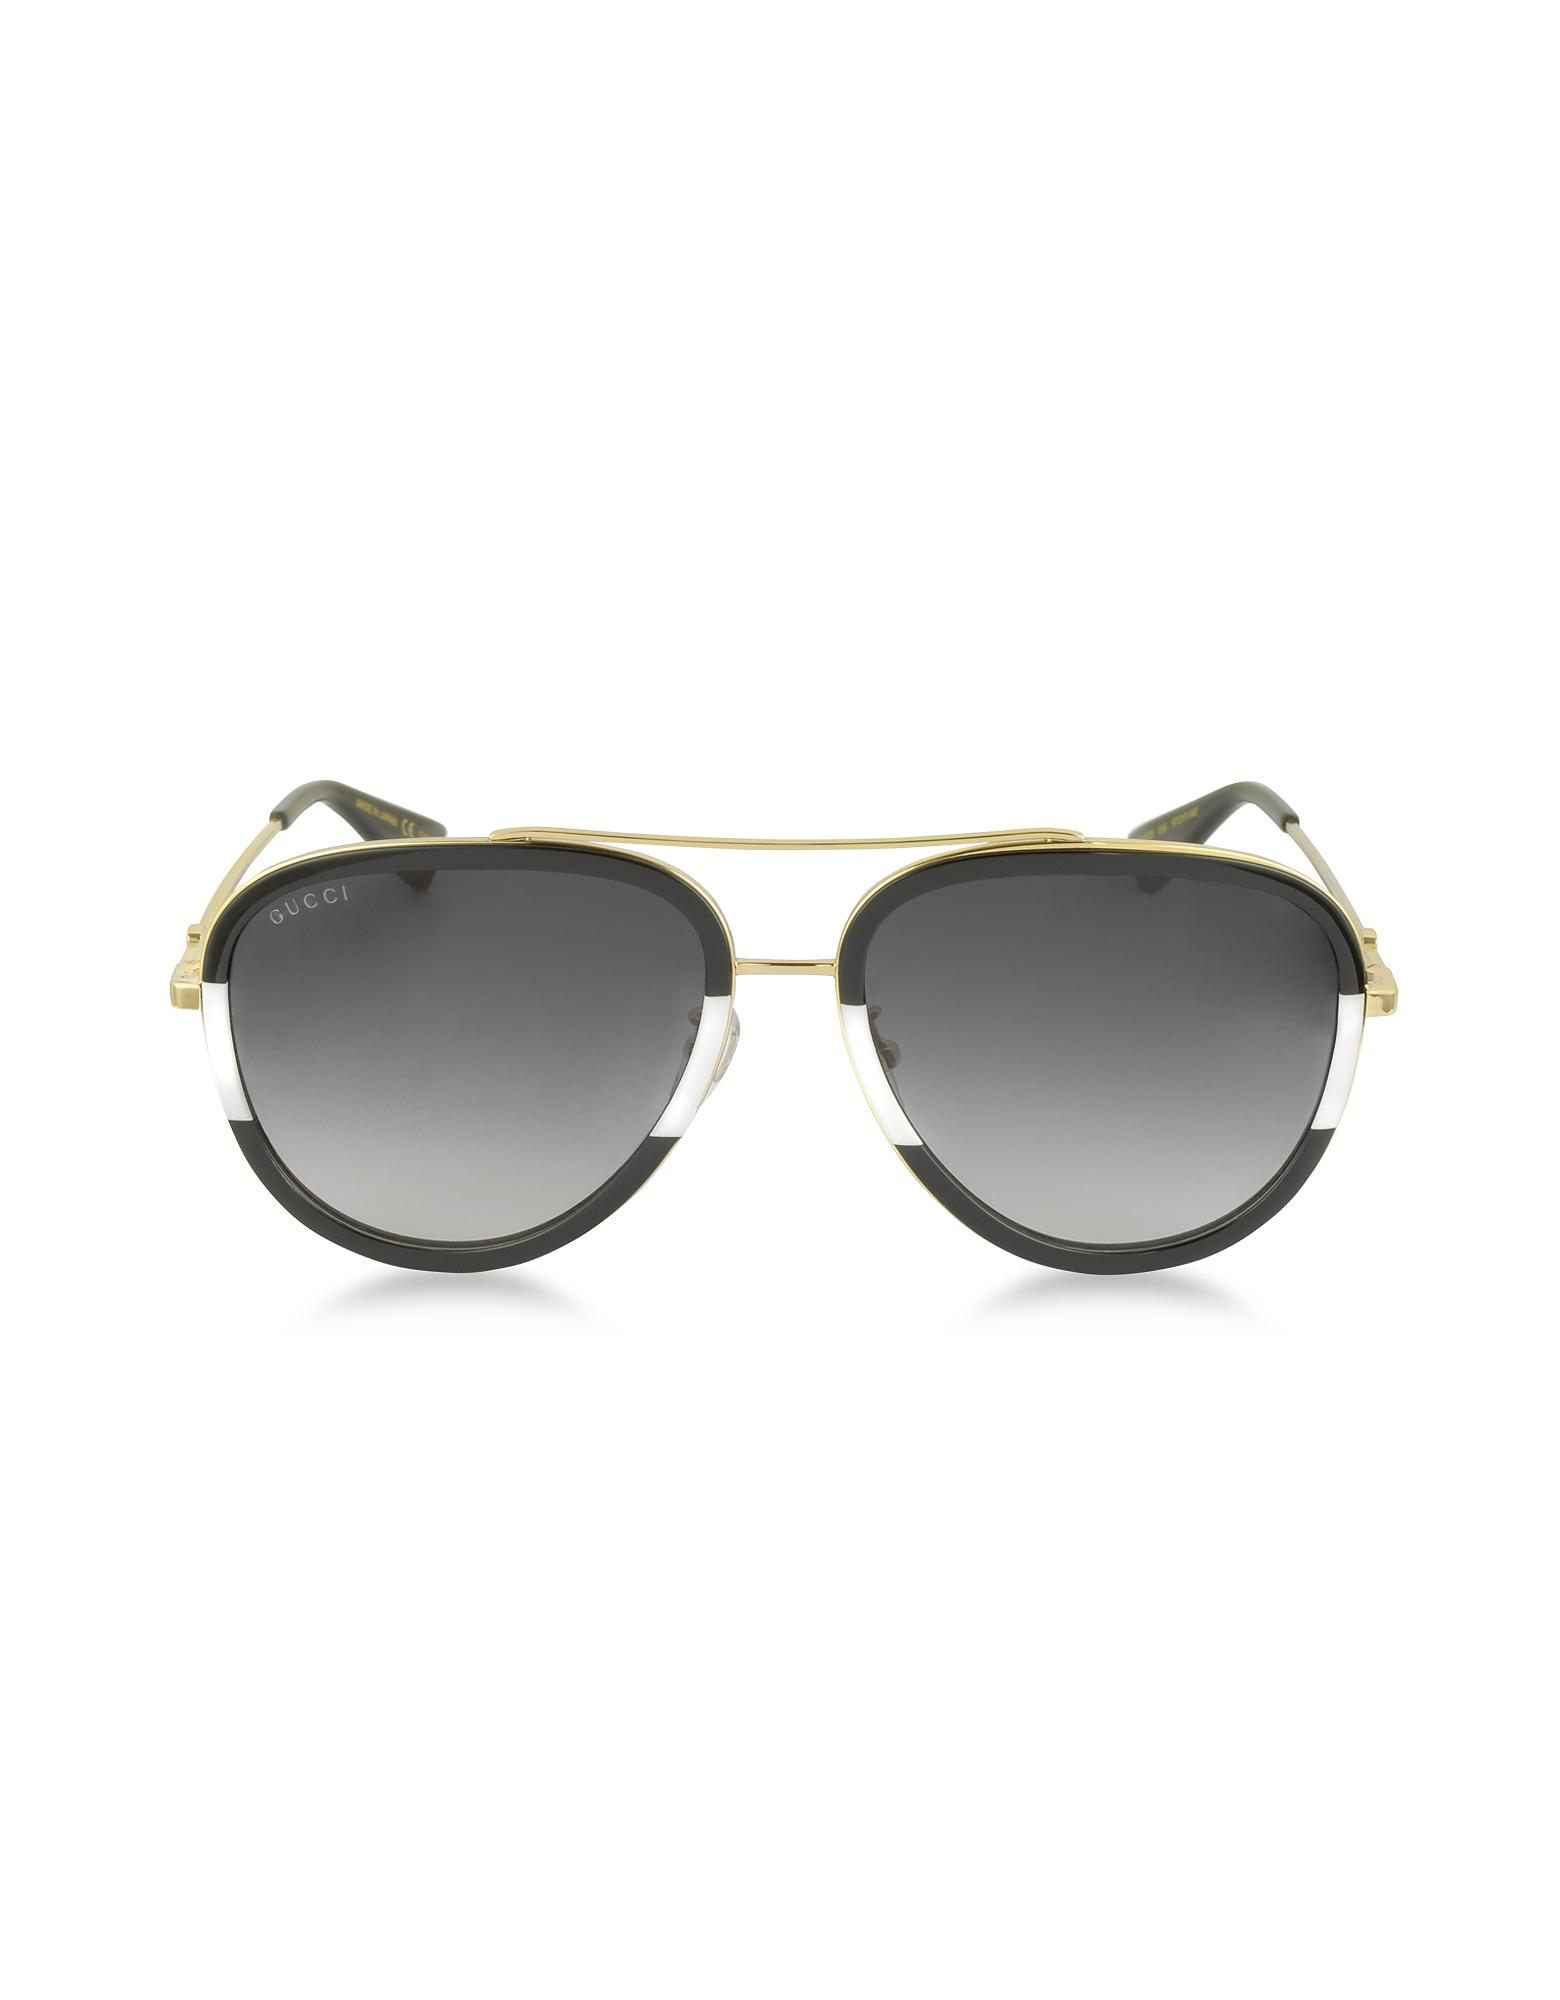 6a61417d8dc47 Gucci - Metallic GG0062S 006 Black white Acetate And Gold Metal Aviator  Women s Sunglasses -. View fullscreen